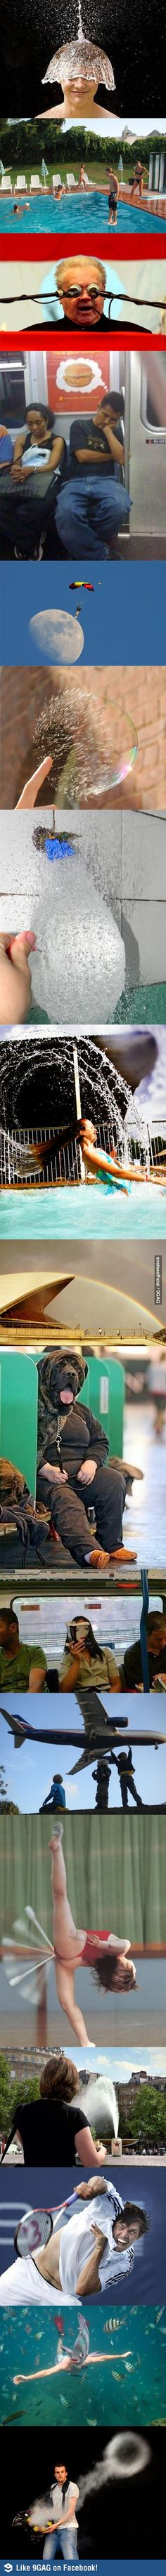 Perfectly-timed photos